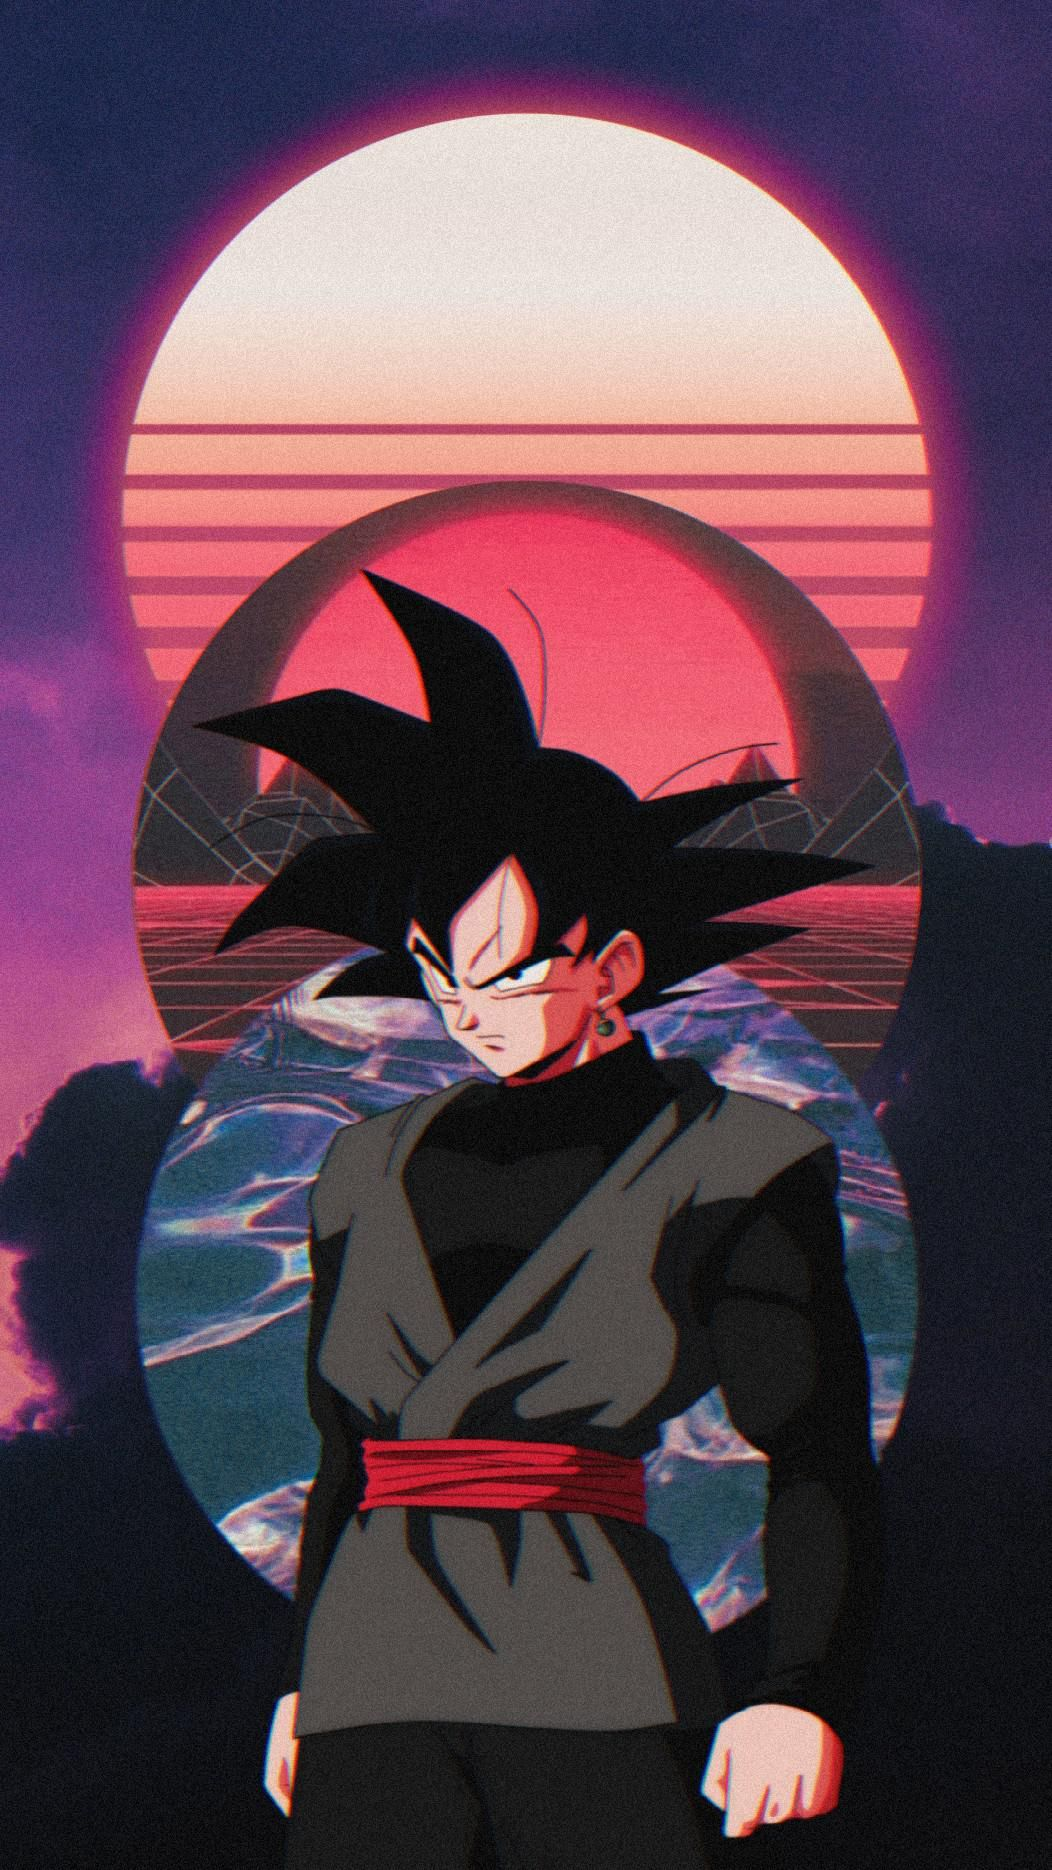 Goku Black Aesthetic Edit Wallpaper By Me 1052x1870 In 2021 Dragon Ball Art Goku Dragon Ball Wallpaper Iphone Dragon Ball Painting